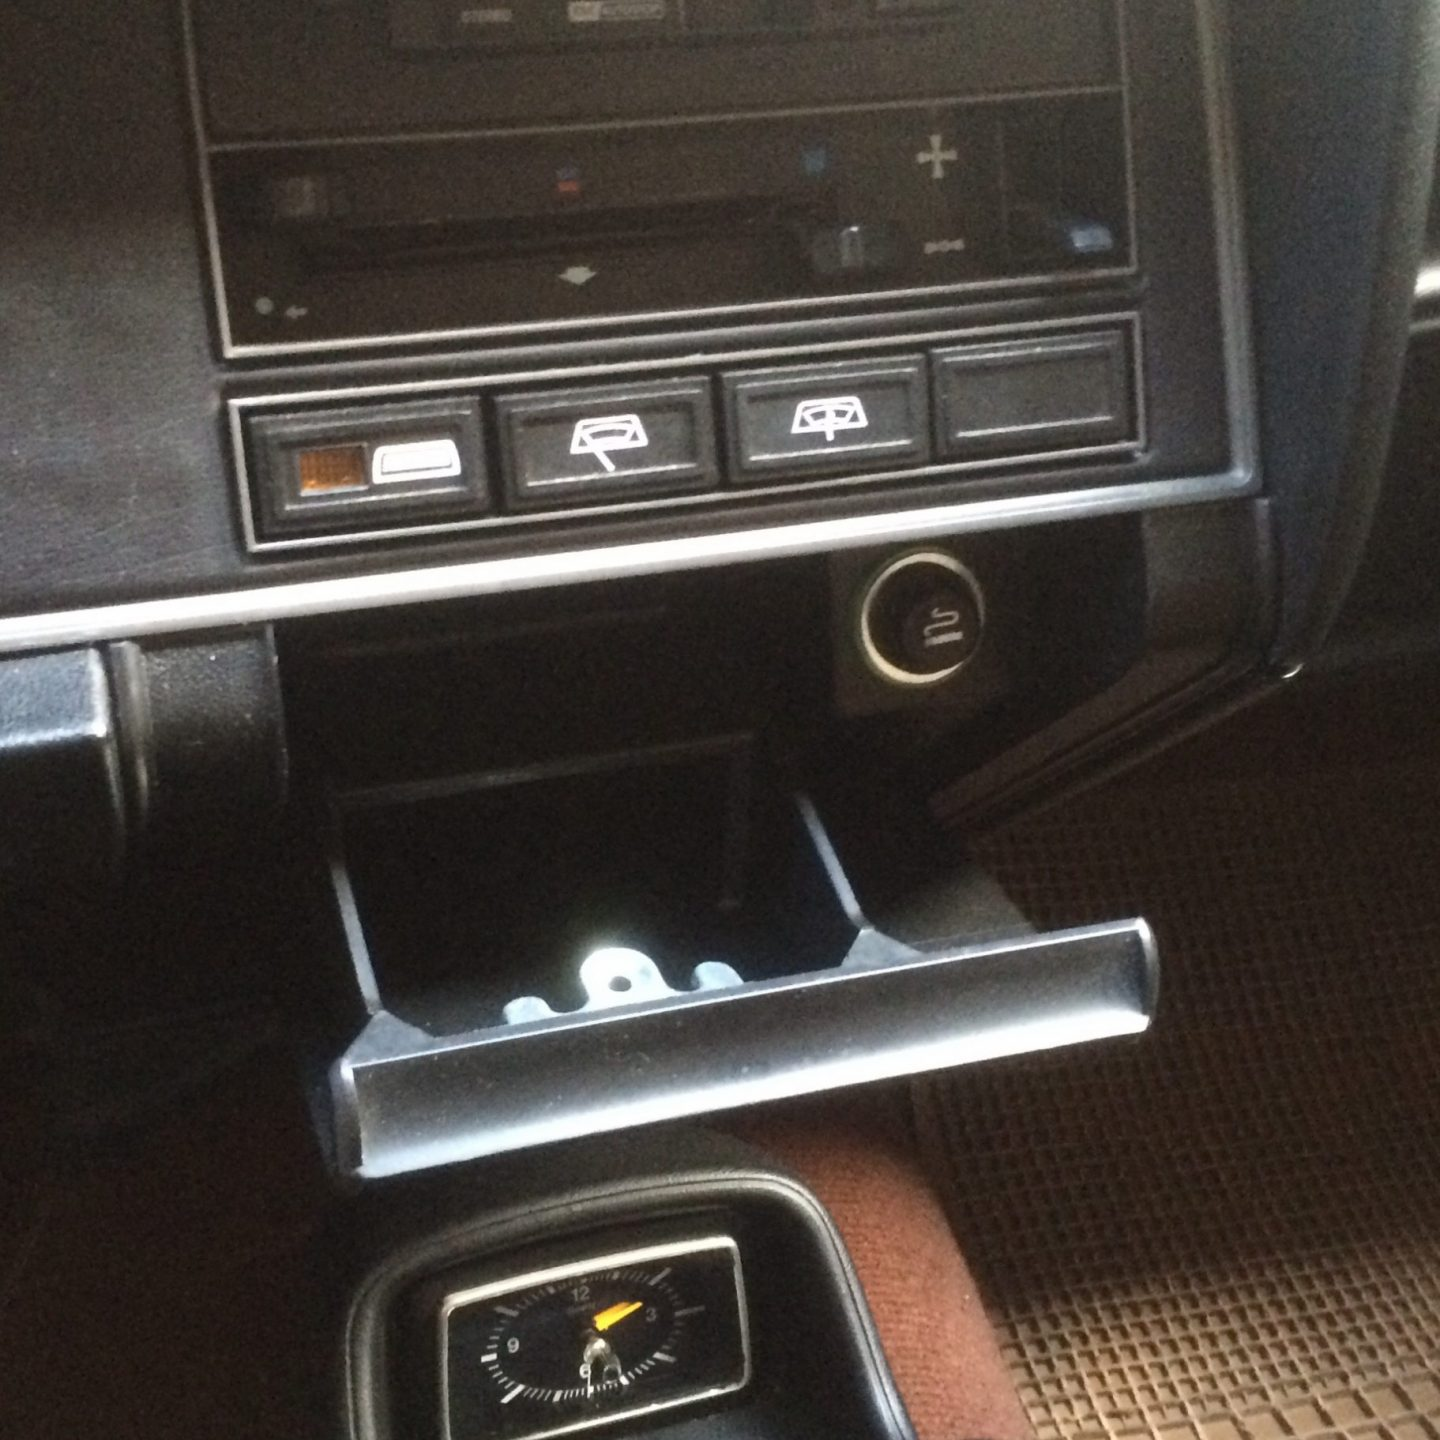 Why don't new cars have ashtrays?